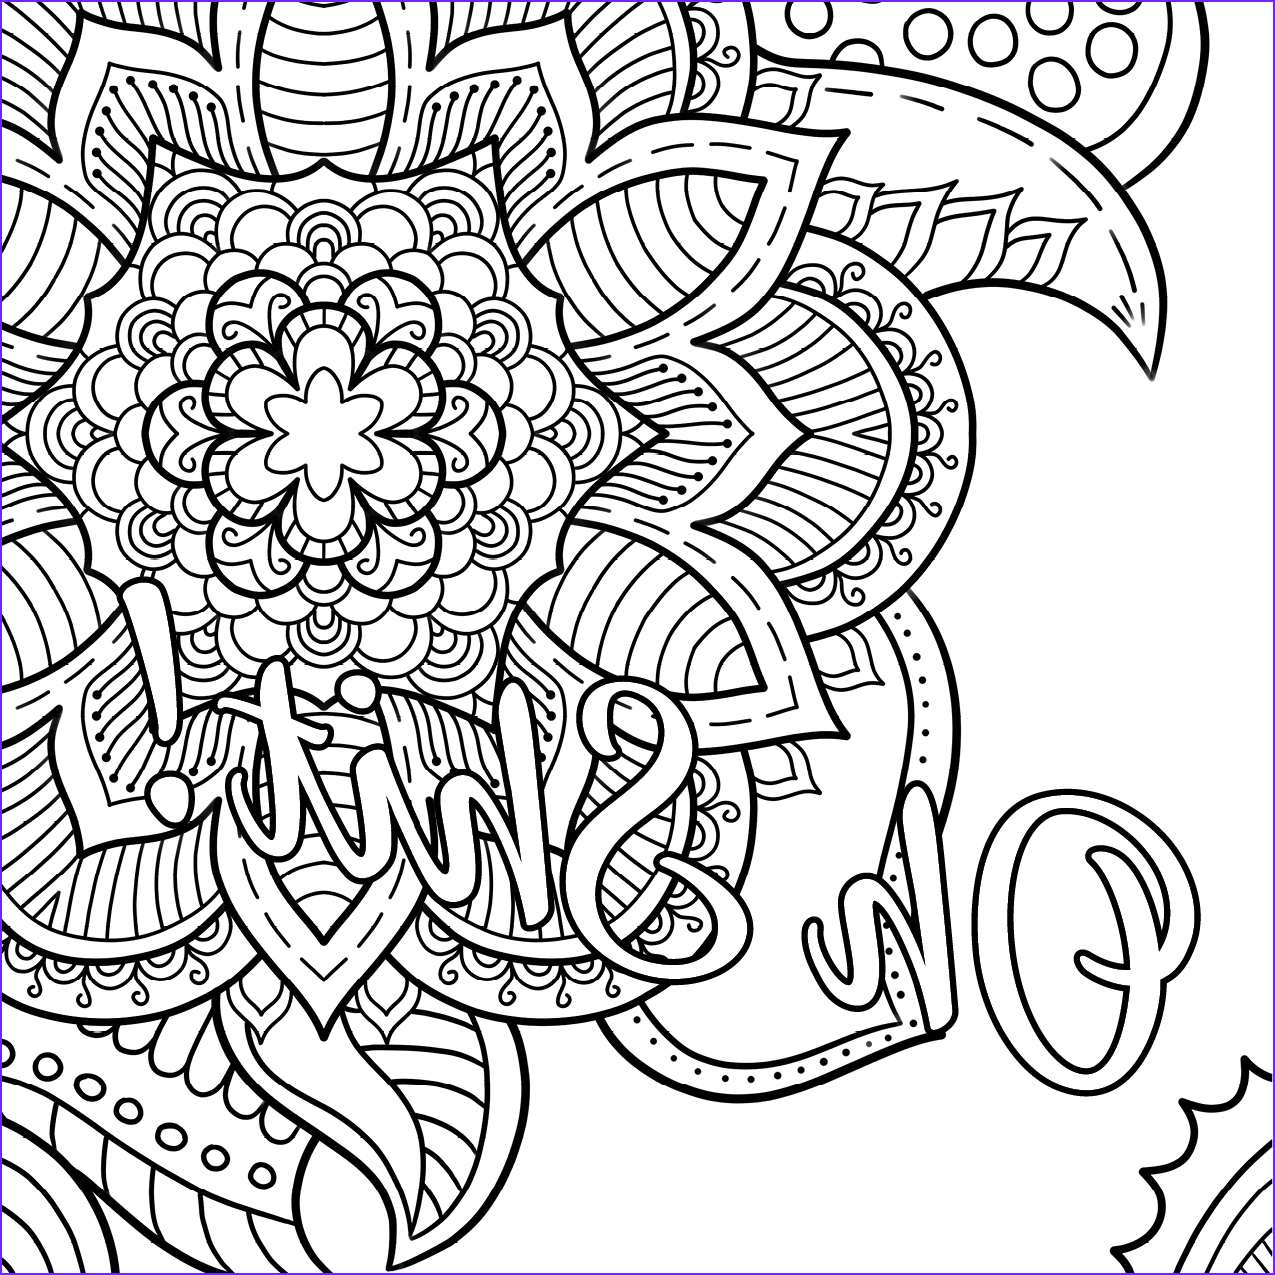 oh shit free coloring page cursing therapy coloring book